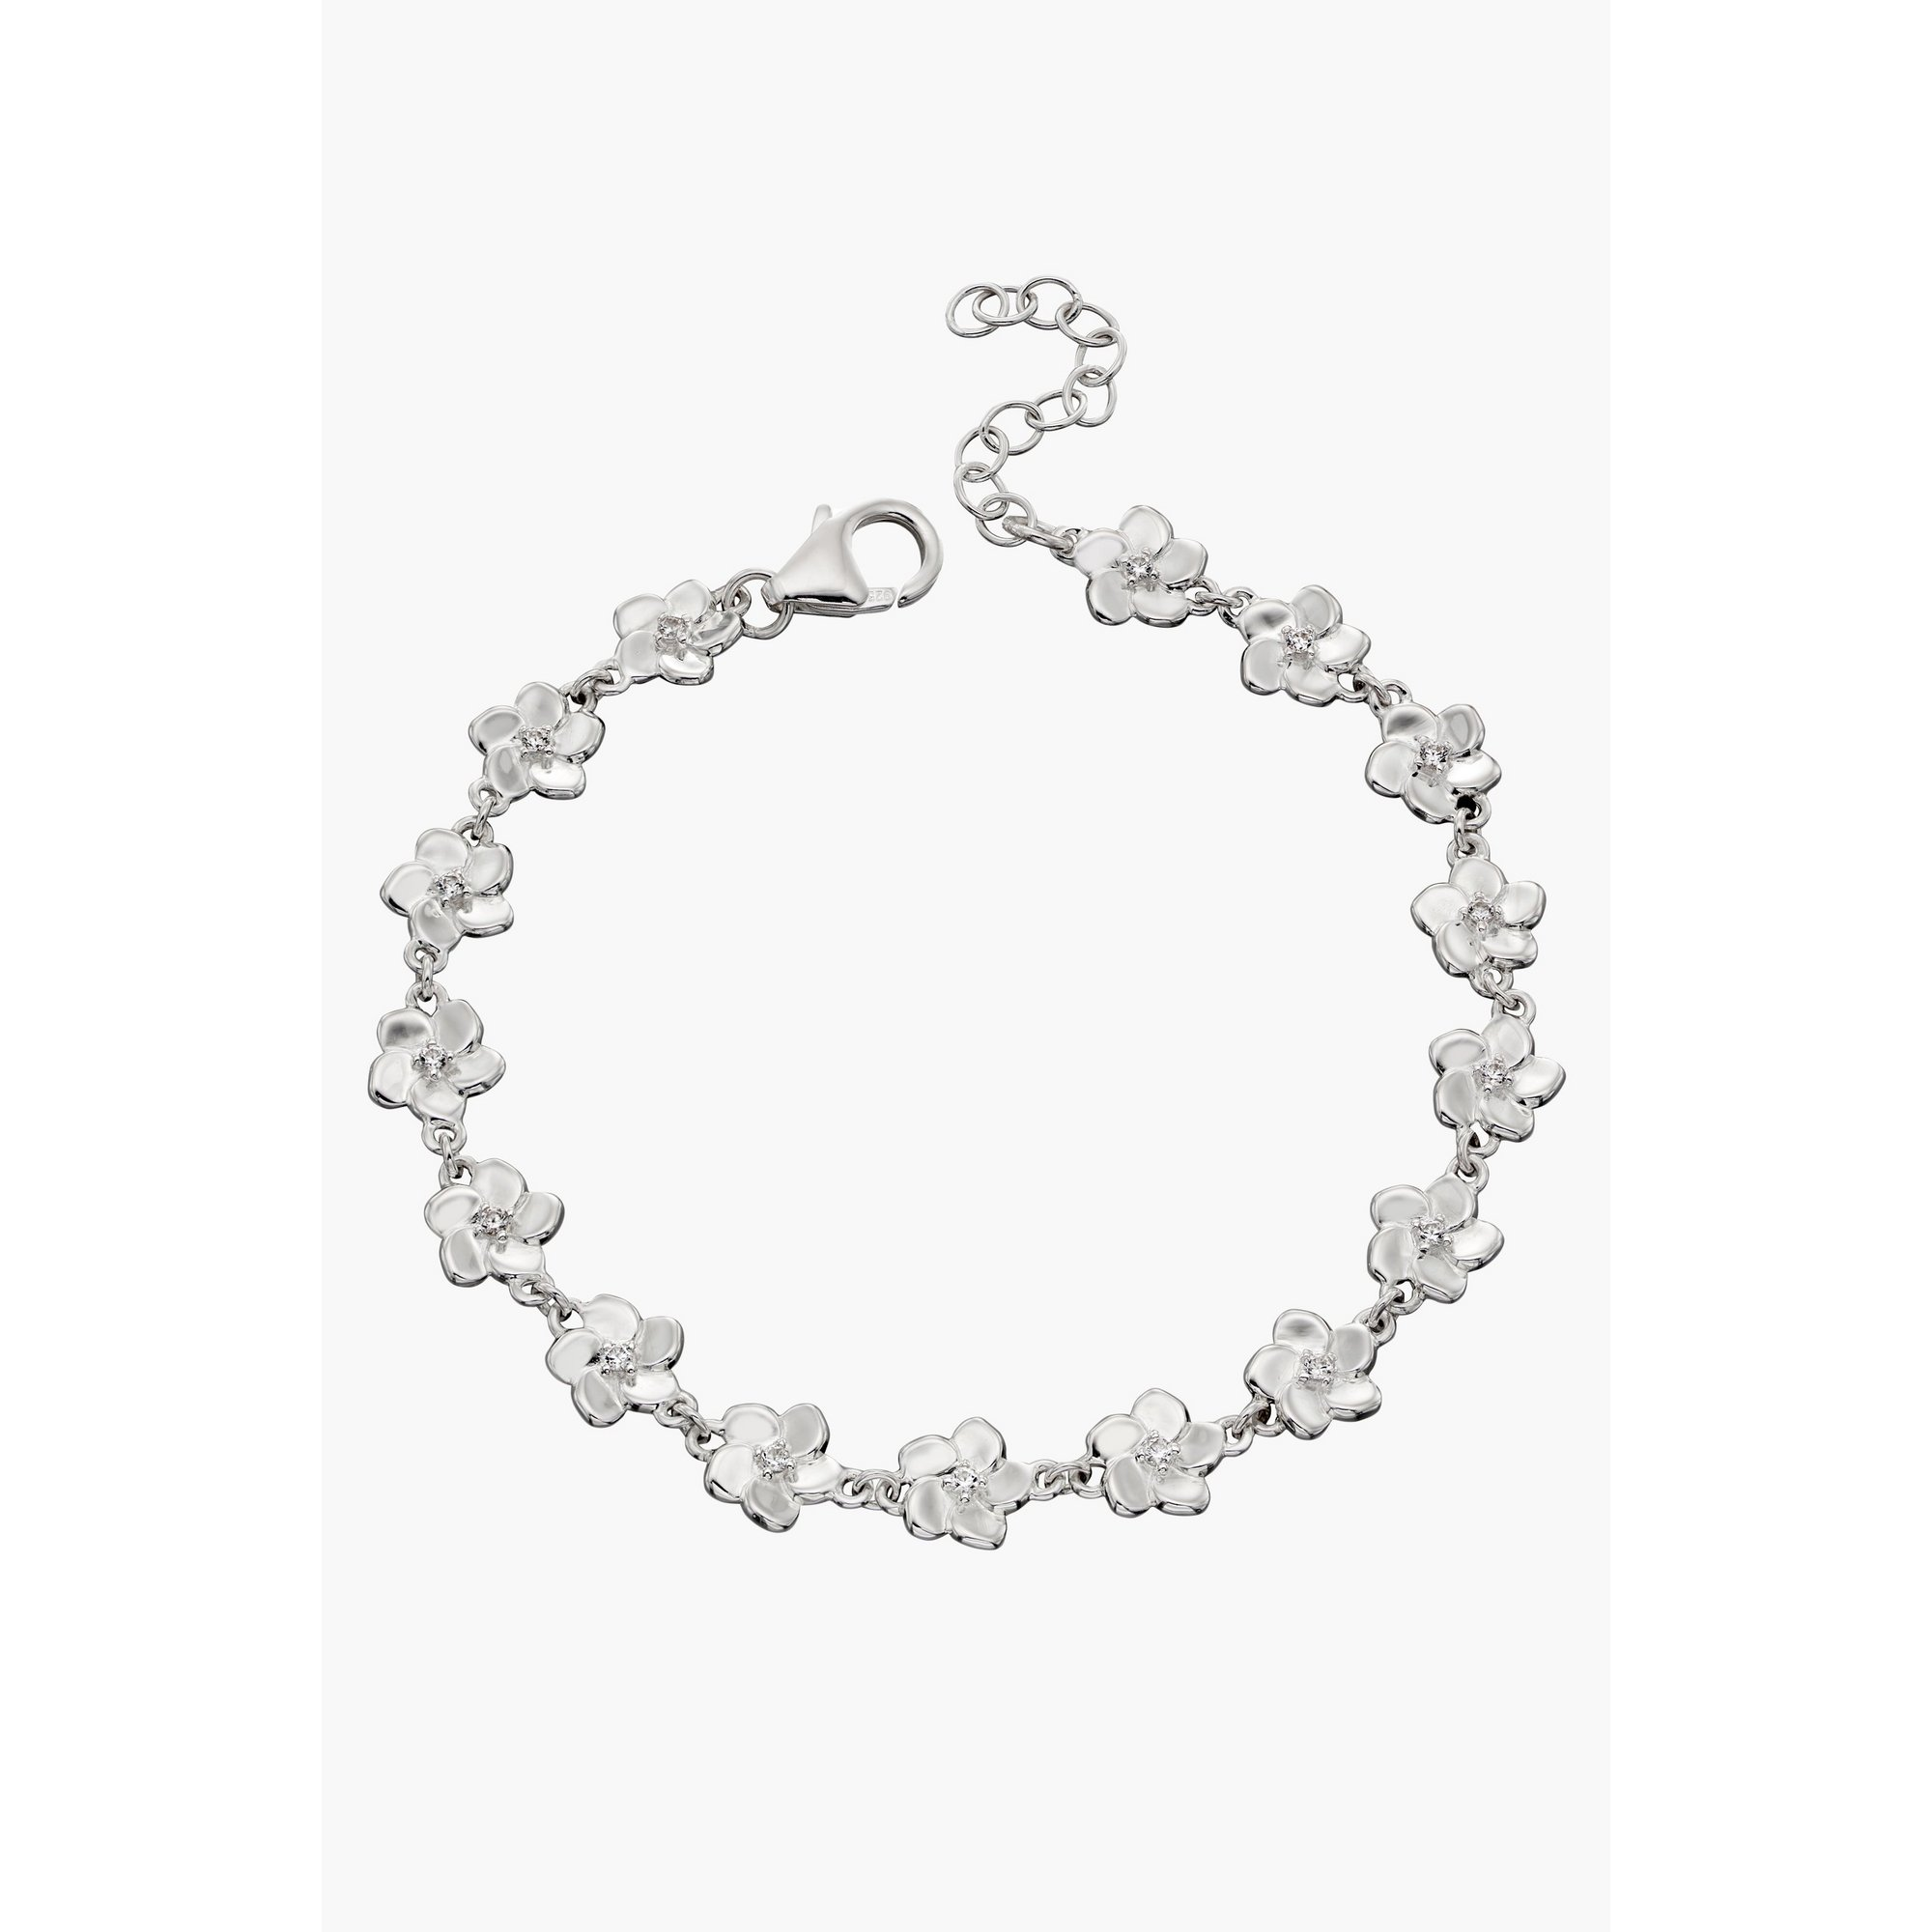 Image of 3D Cherry Blossom Bracelet with Cubic Zirconia Centre